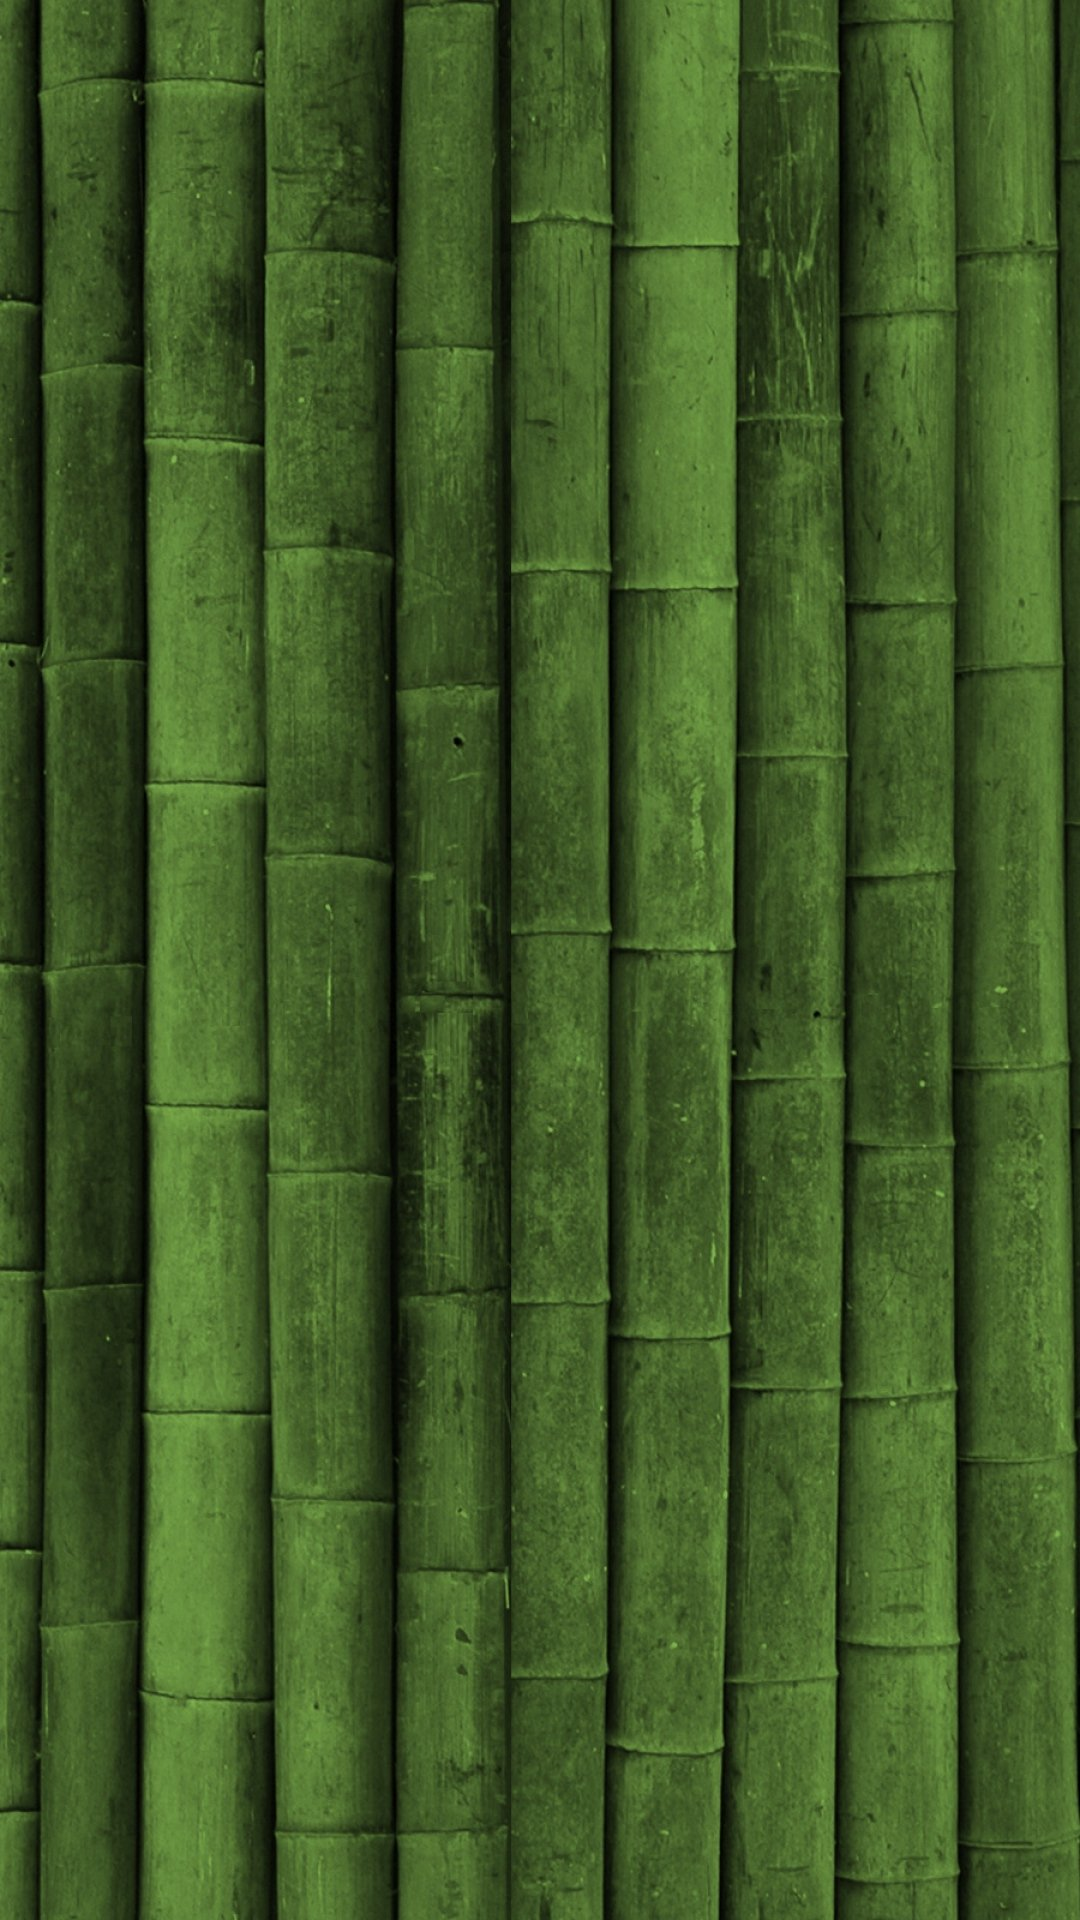 Download Wallpaper 1080x1920 bamboo stick green vertical Sony 1080x1920